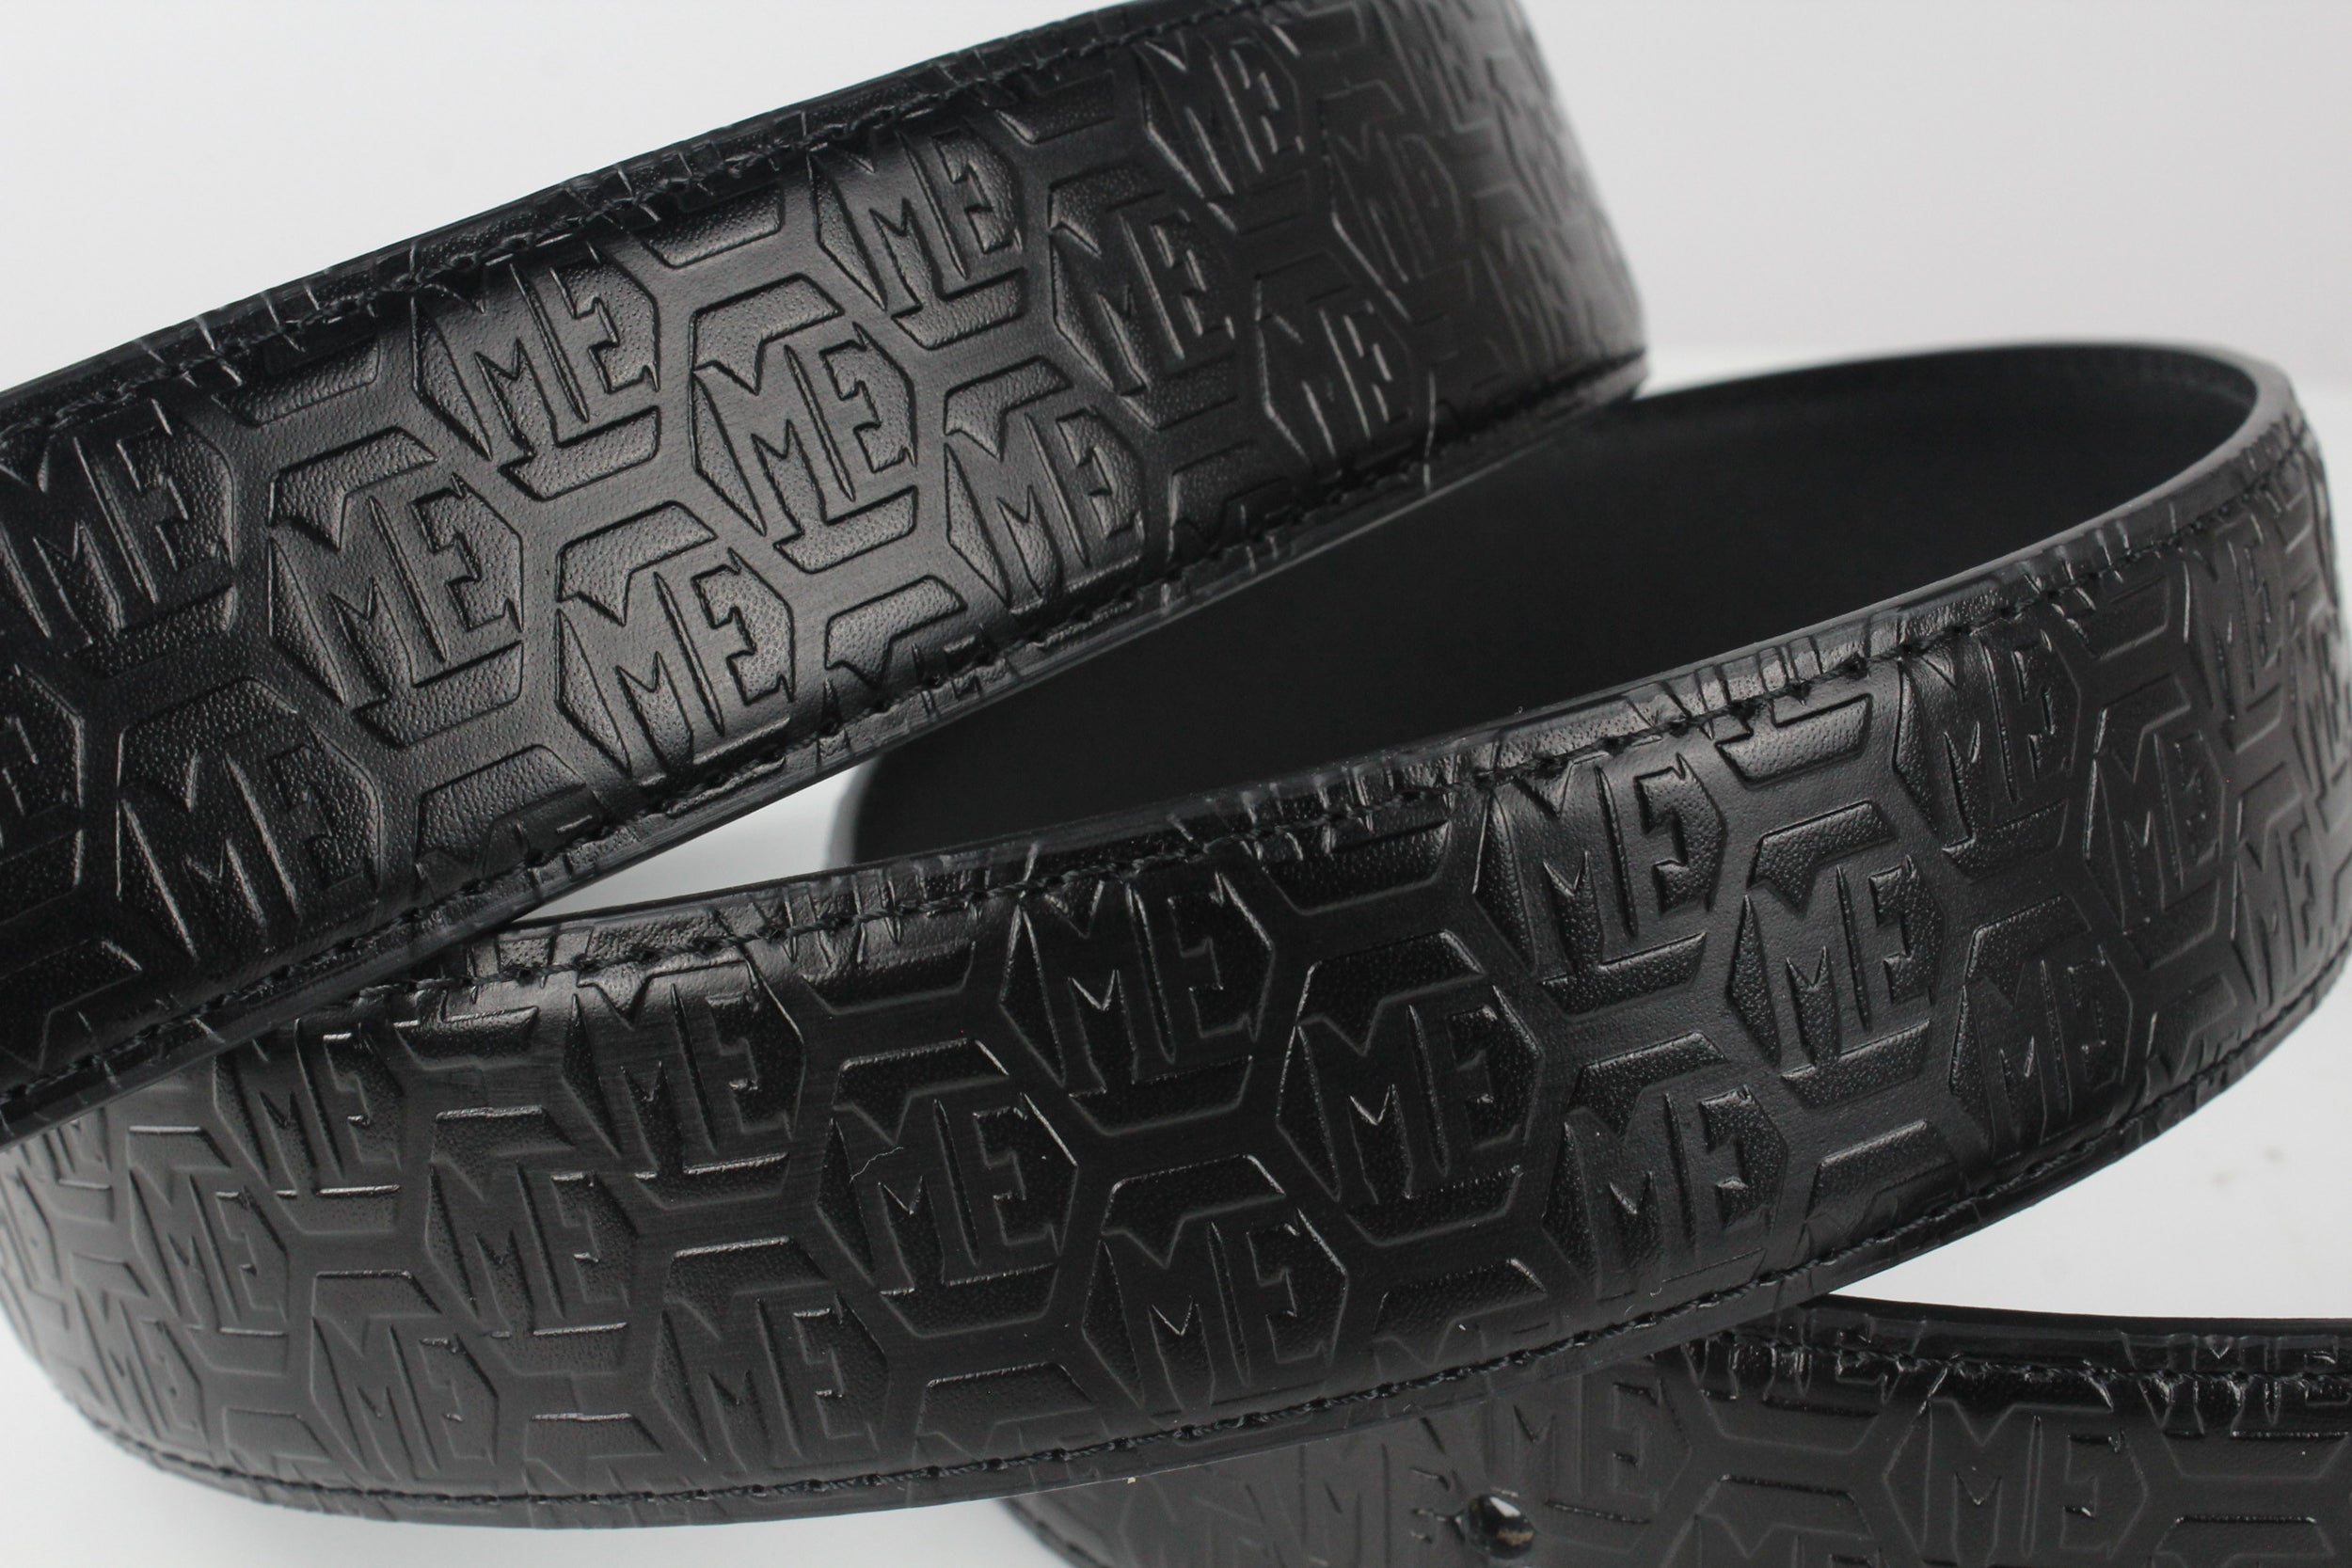 ME CARBON FIBER BUCKLE, LOGO EMBOSSED LEATHER BELT Accessories - MORILLO ENTERPRISE